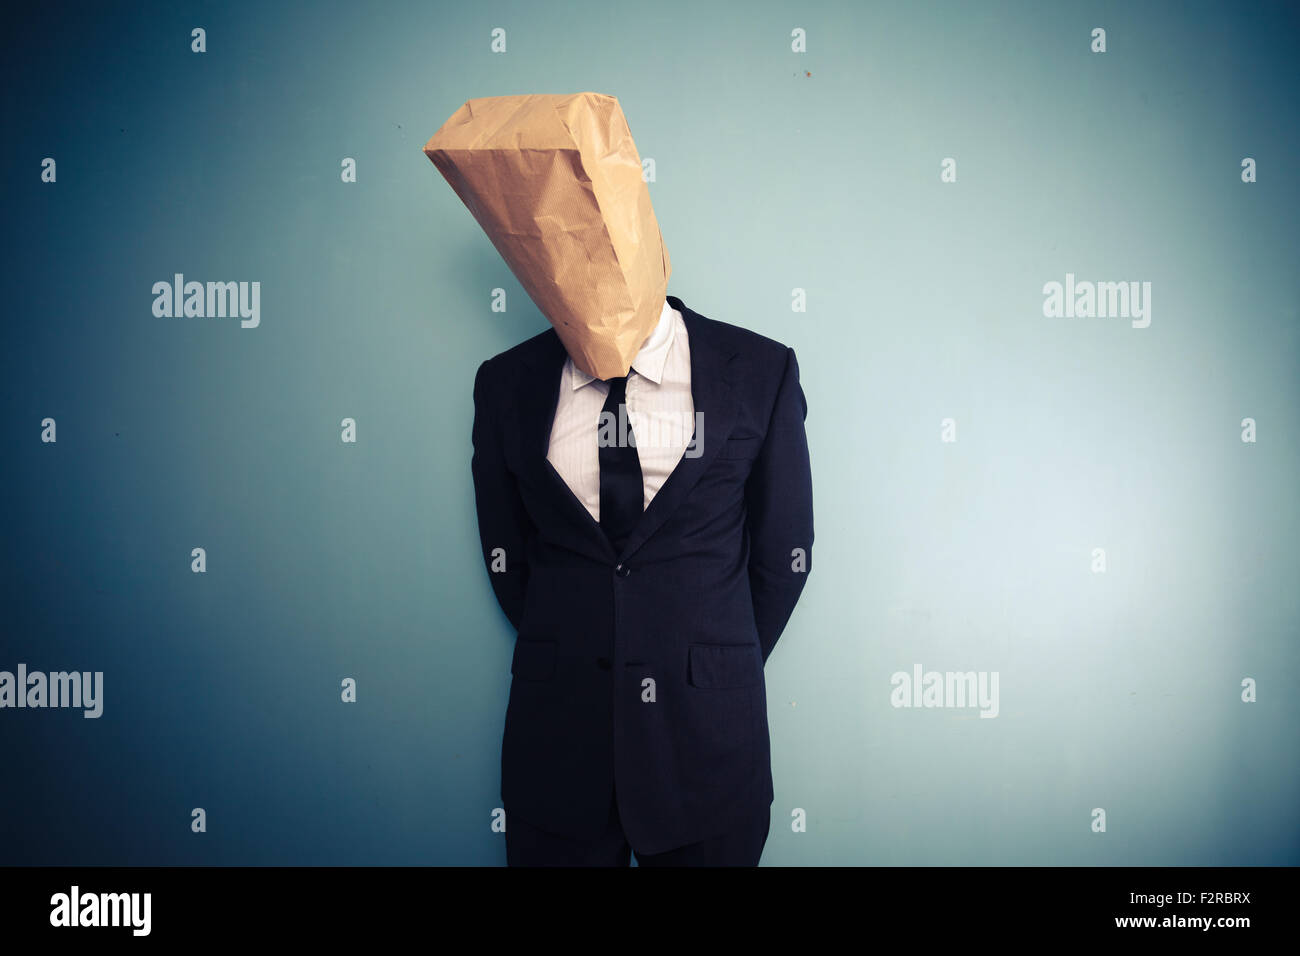 sad and ashamed businessman with bag over head - Stock Image